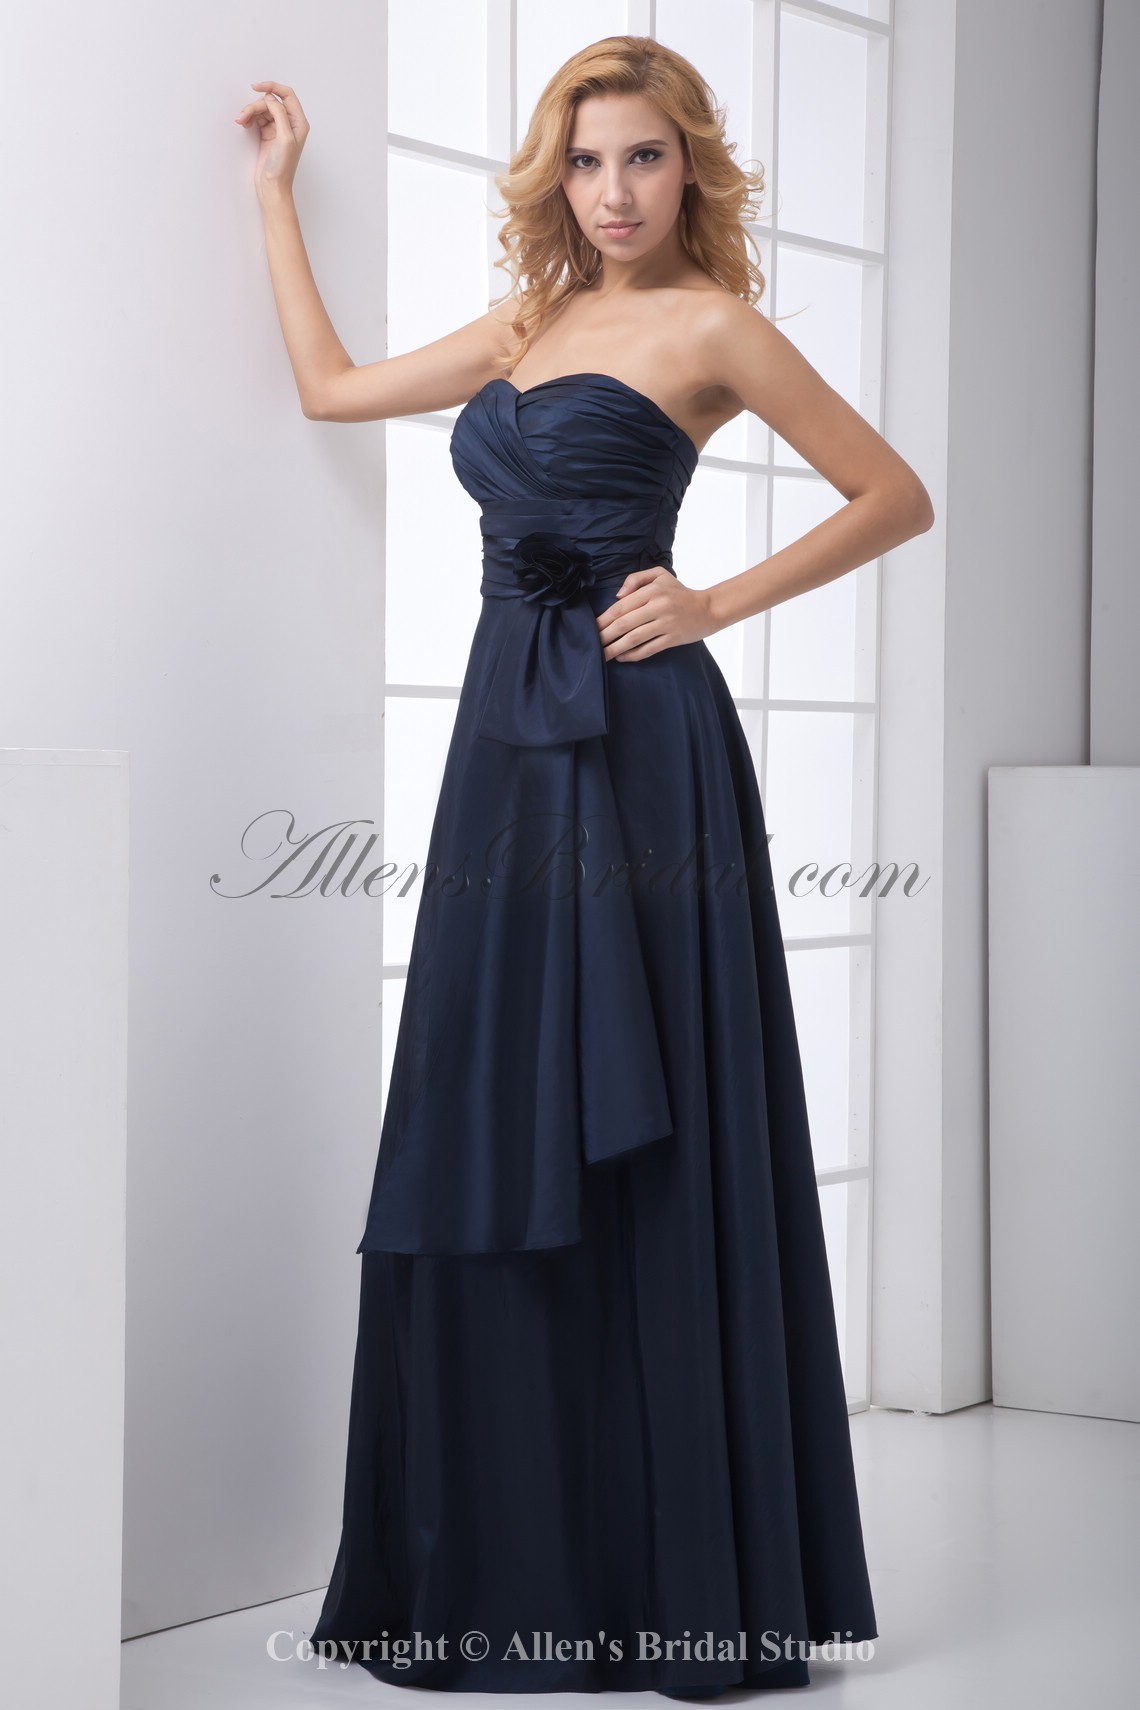 /162-1290/taffeta-sweetheart-a-line-floor-length-flower-and-sash-prom-dress.jpg